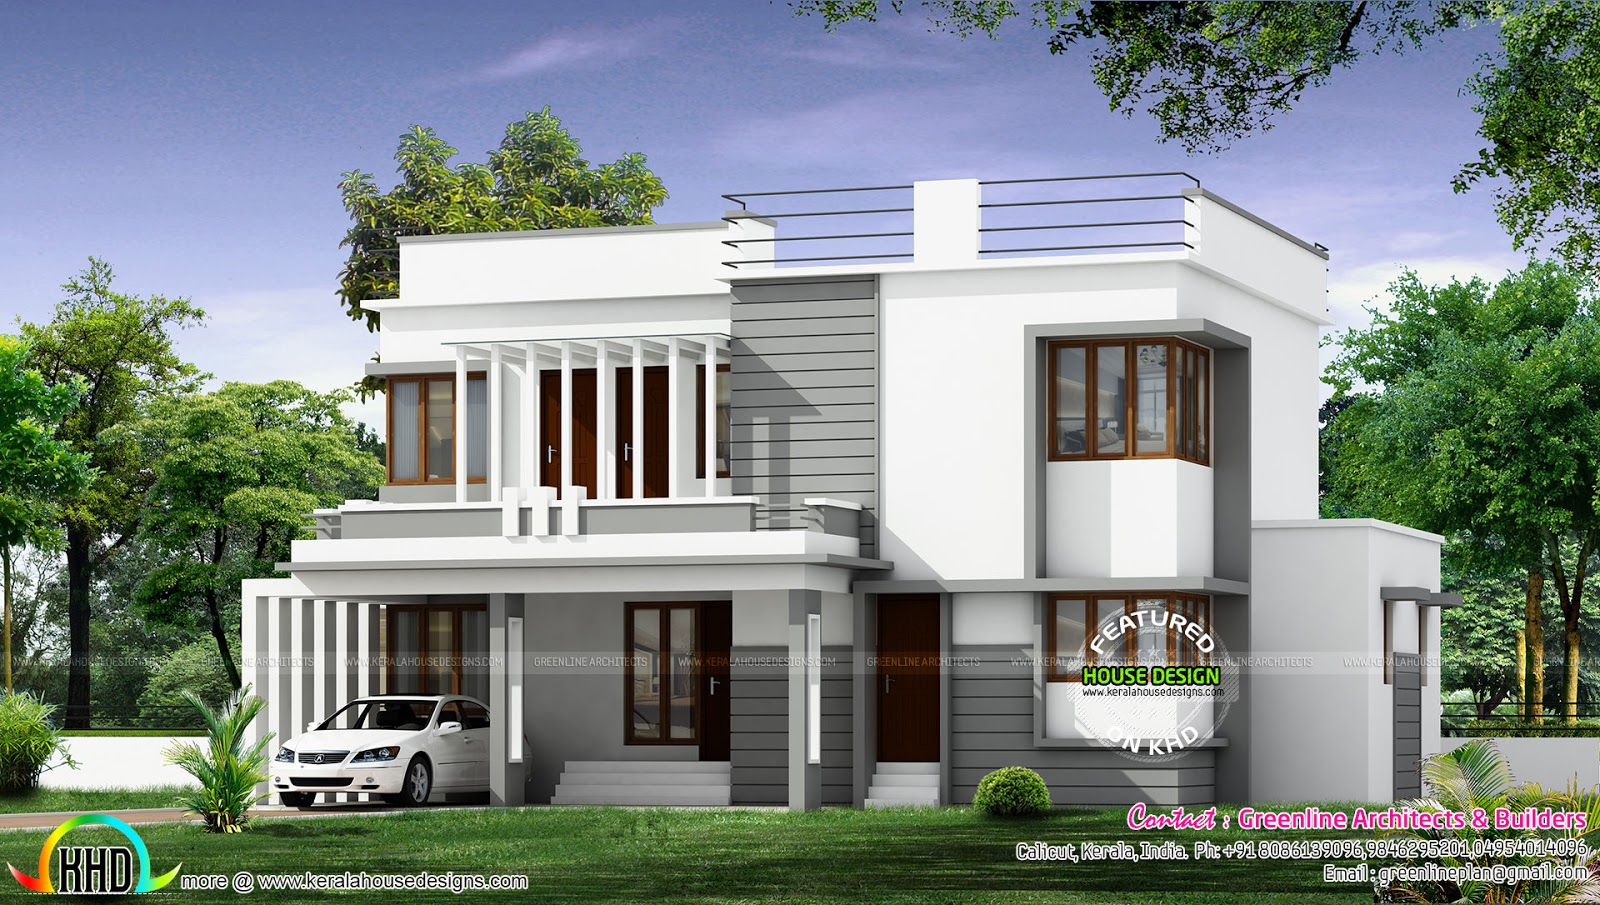 New modern house architecture kerala home design and for Beautiful house design 2016